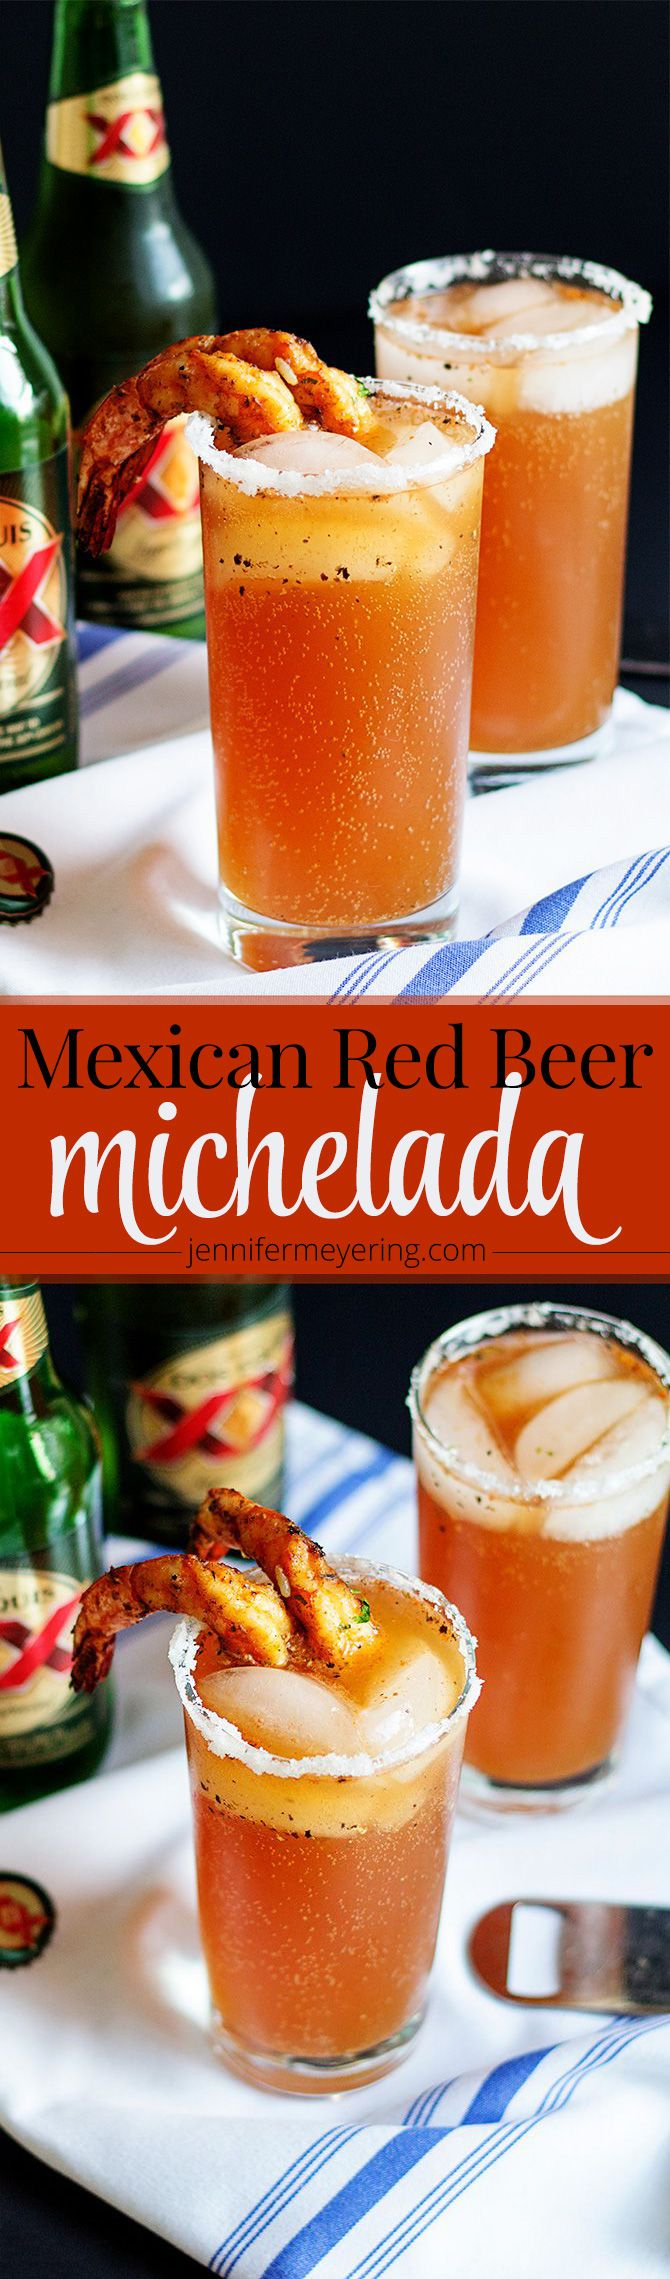 According to Wikipedia, a michelada is a Mexican cerveza preparada made with beer, lime juice, and assorted sauces, spices, and peppers. It's traditionally served in a chilled, salt-rimmed glass. Some people in Mexico believe micheladas are a good remedy for